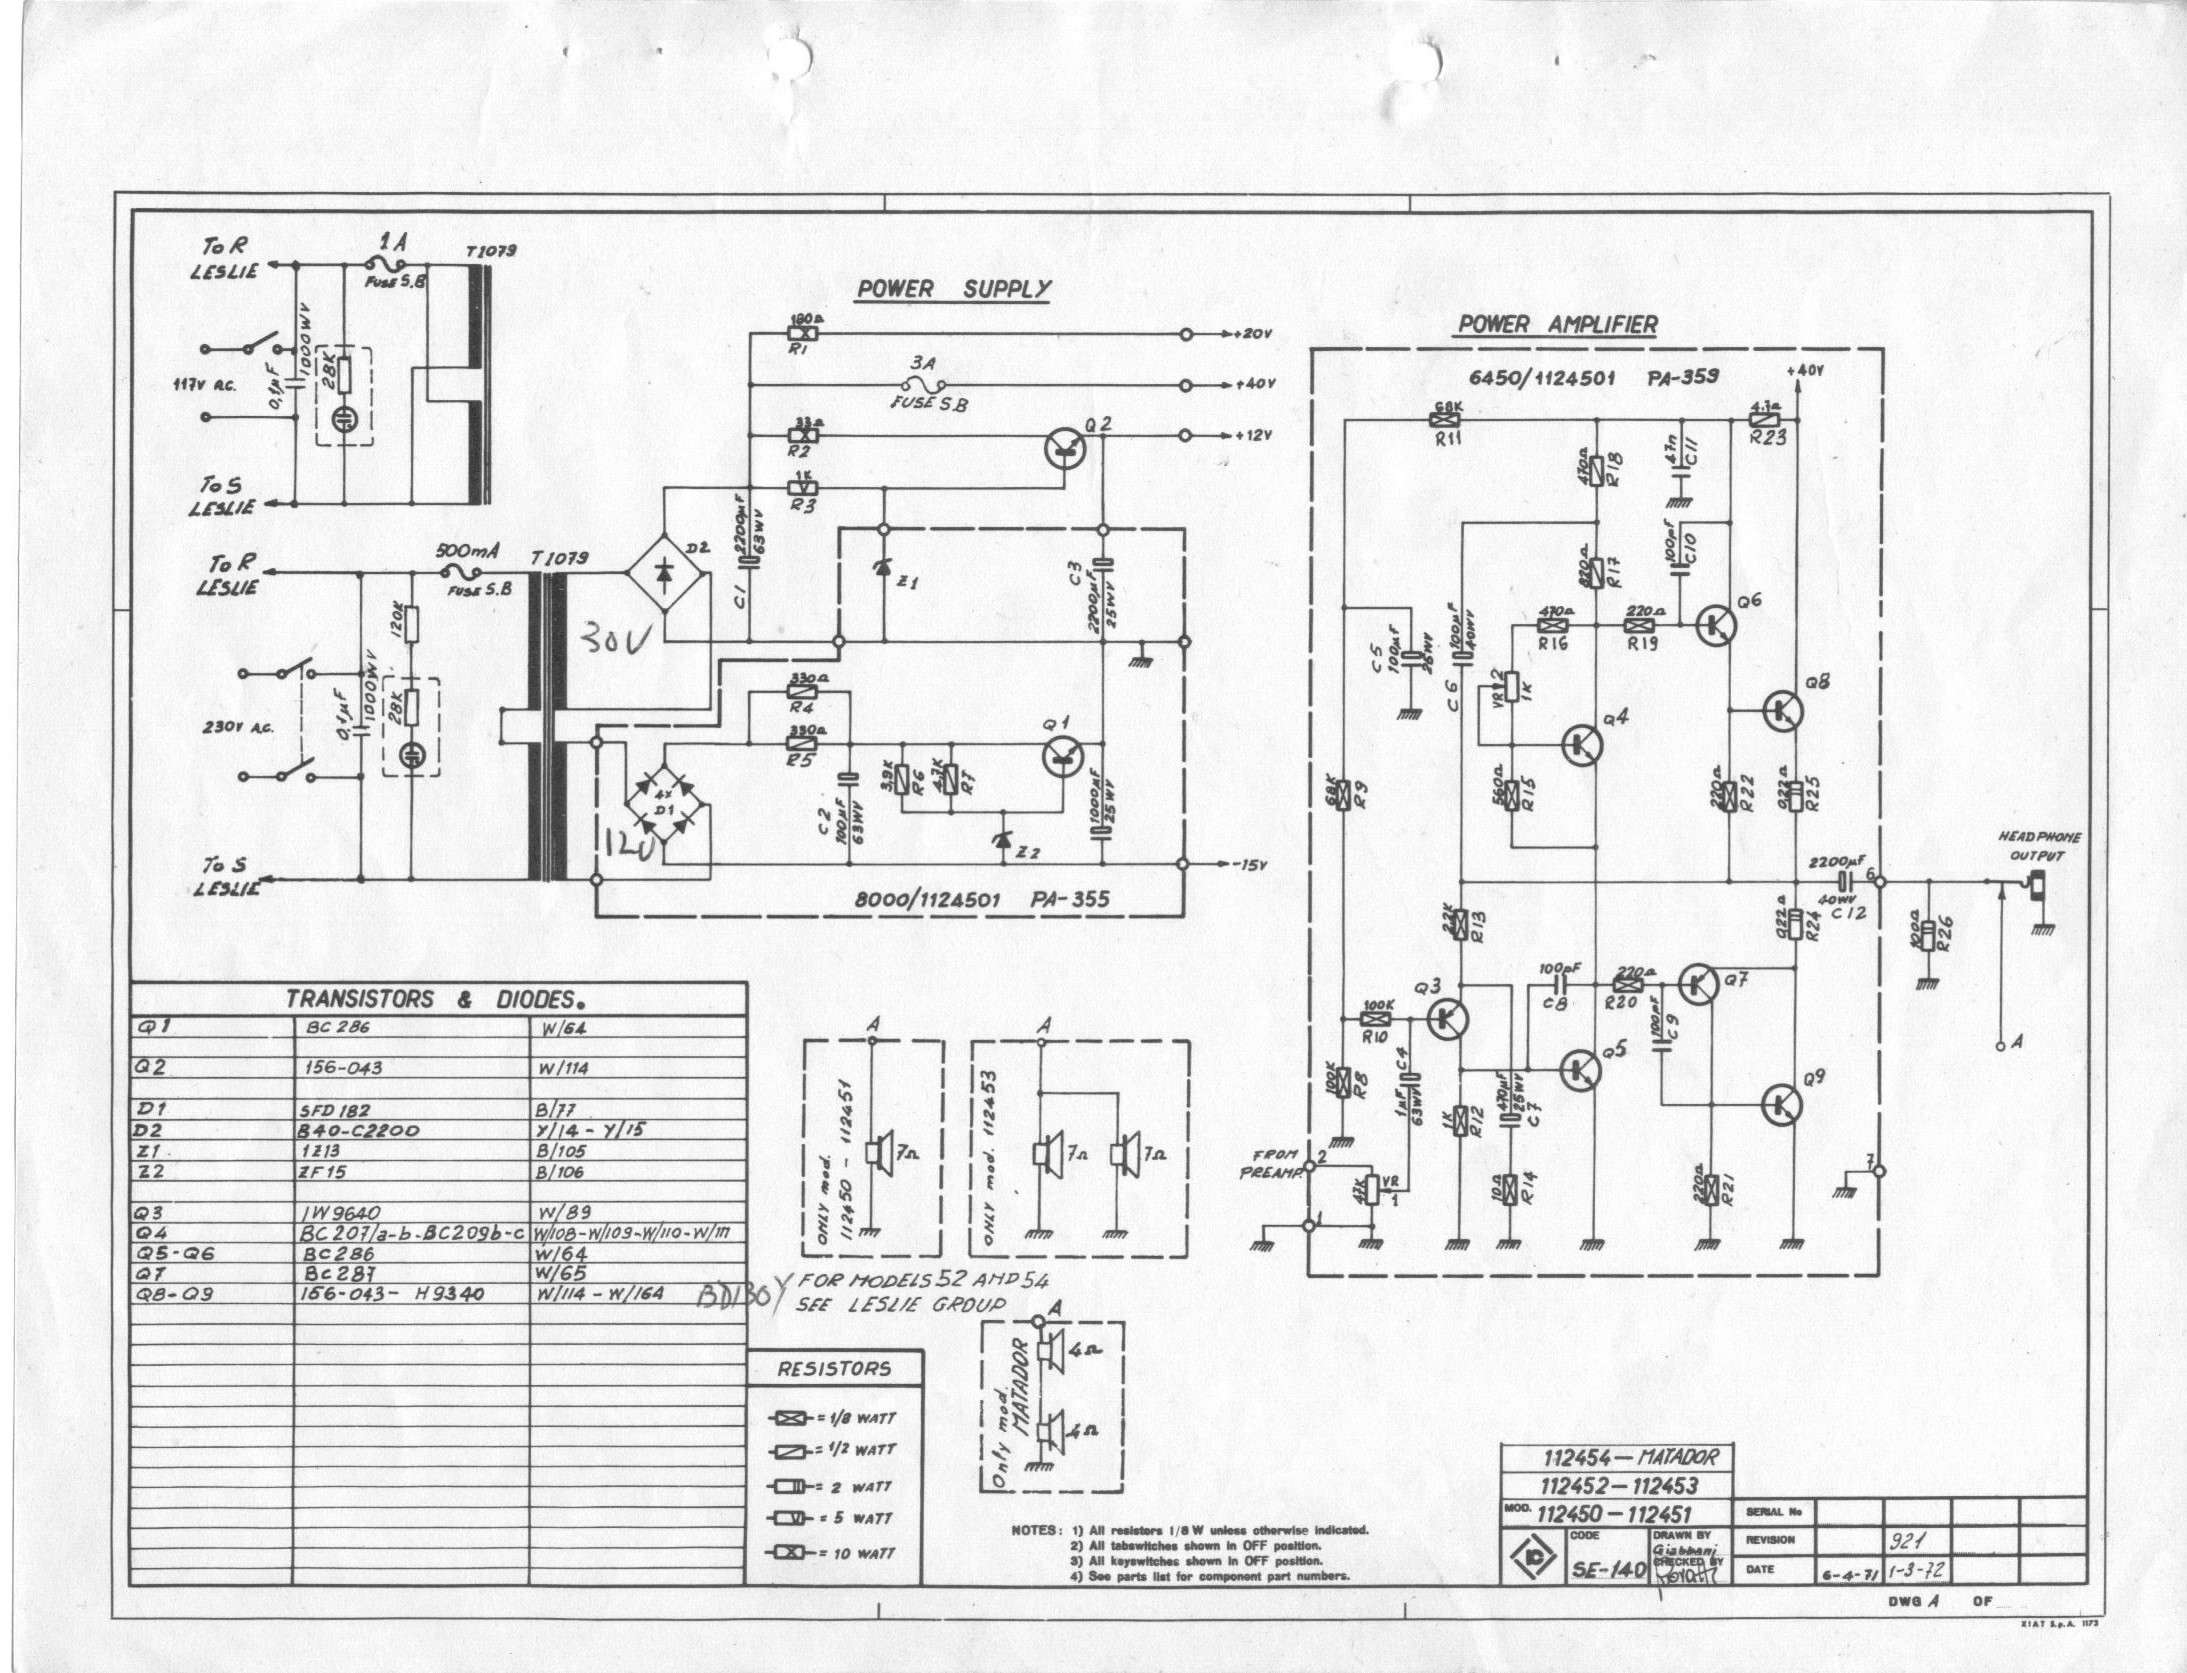 Matador08 farfisa matador r electronic organ schematic diagrams farfisa org farfisa wiring diagram at panicattacktreatment.co